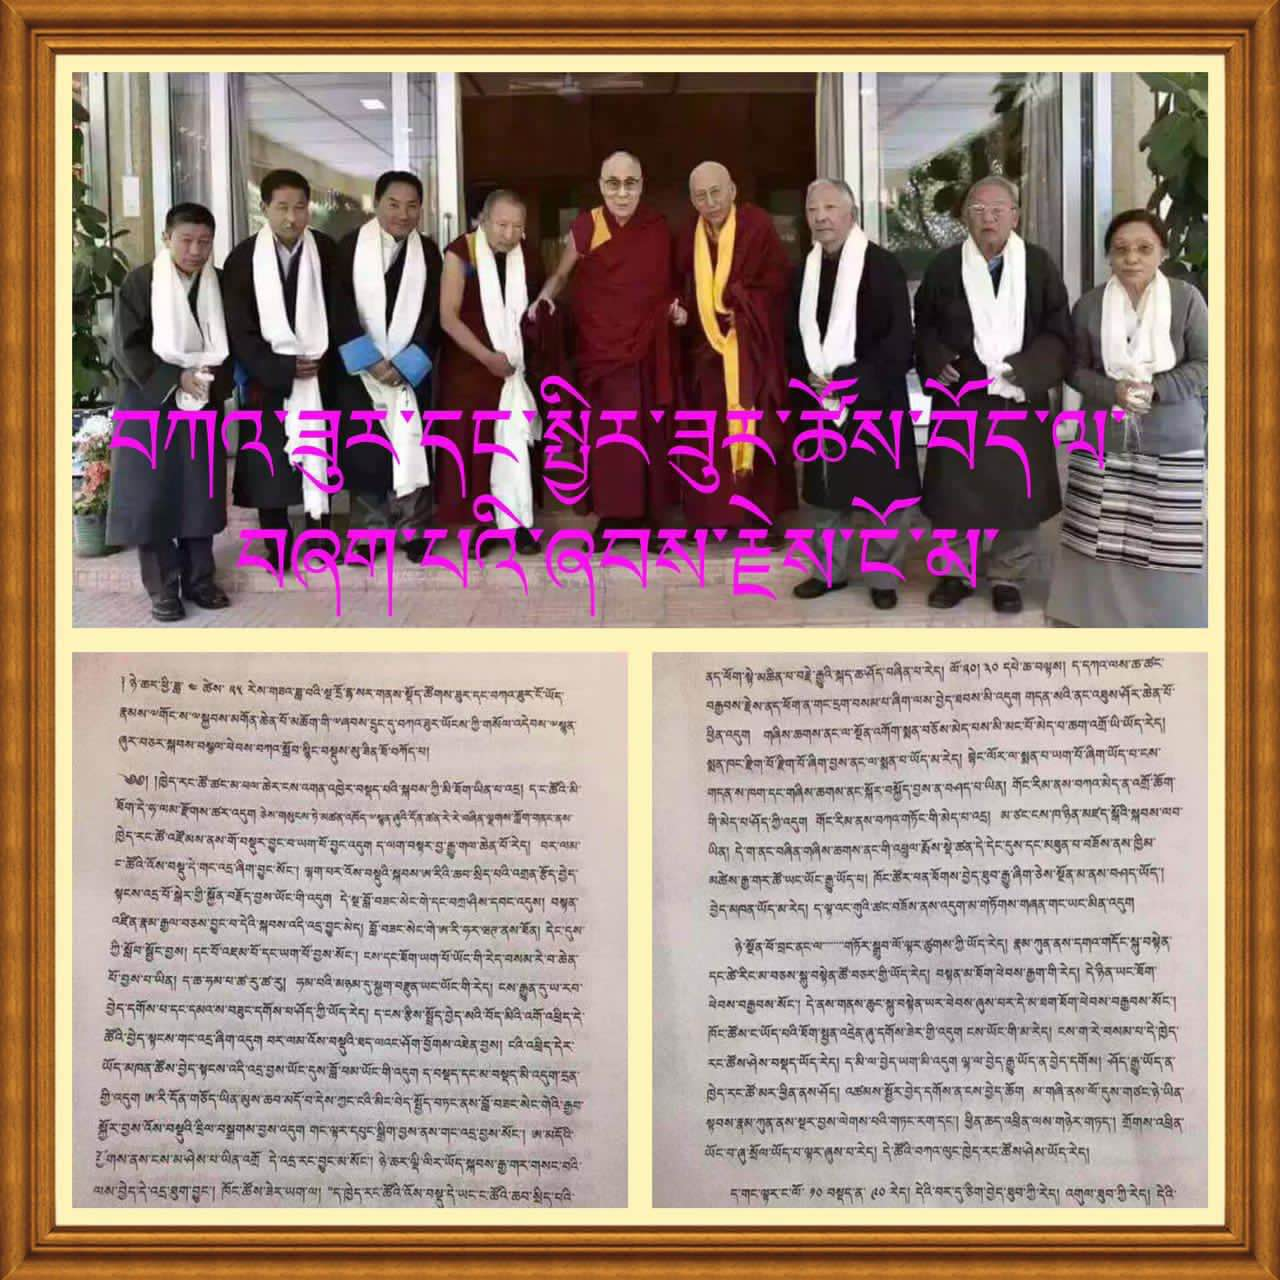 The transcript has been in circulation in conjunction with this image, purporting to show the people who had an audience with His Holiness the Dalai Lama